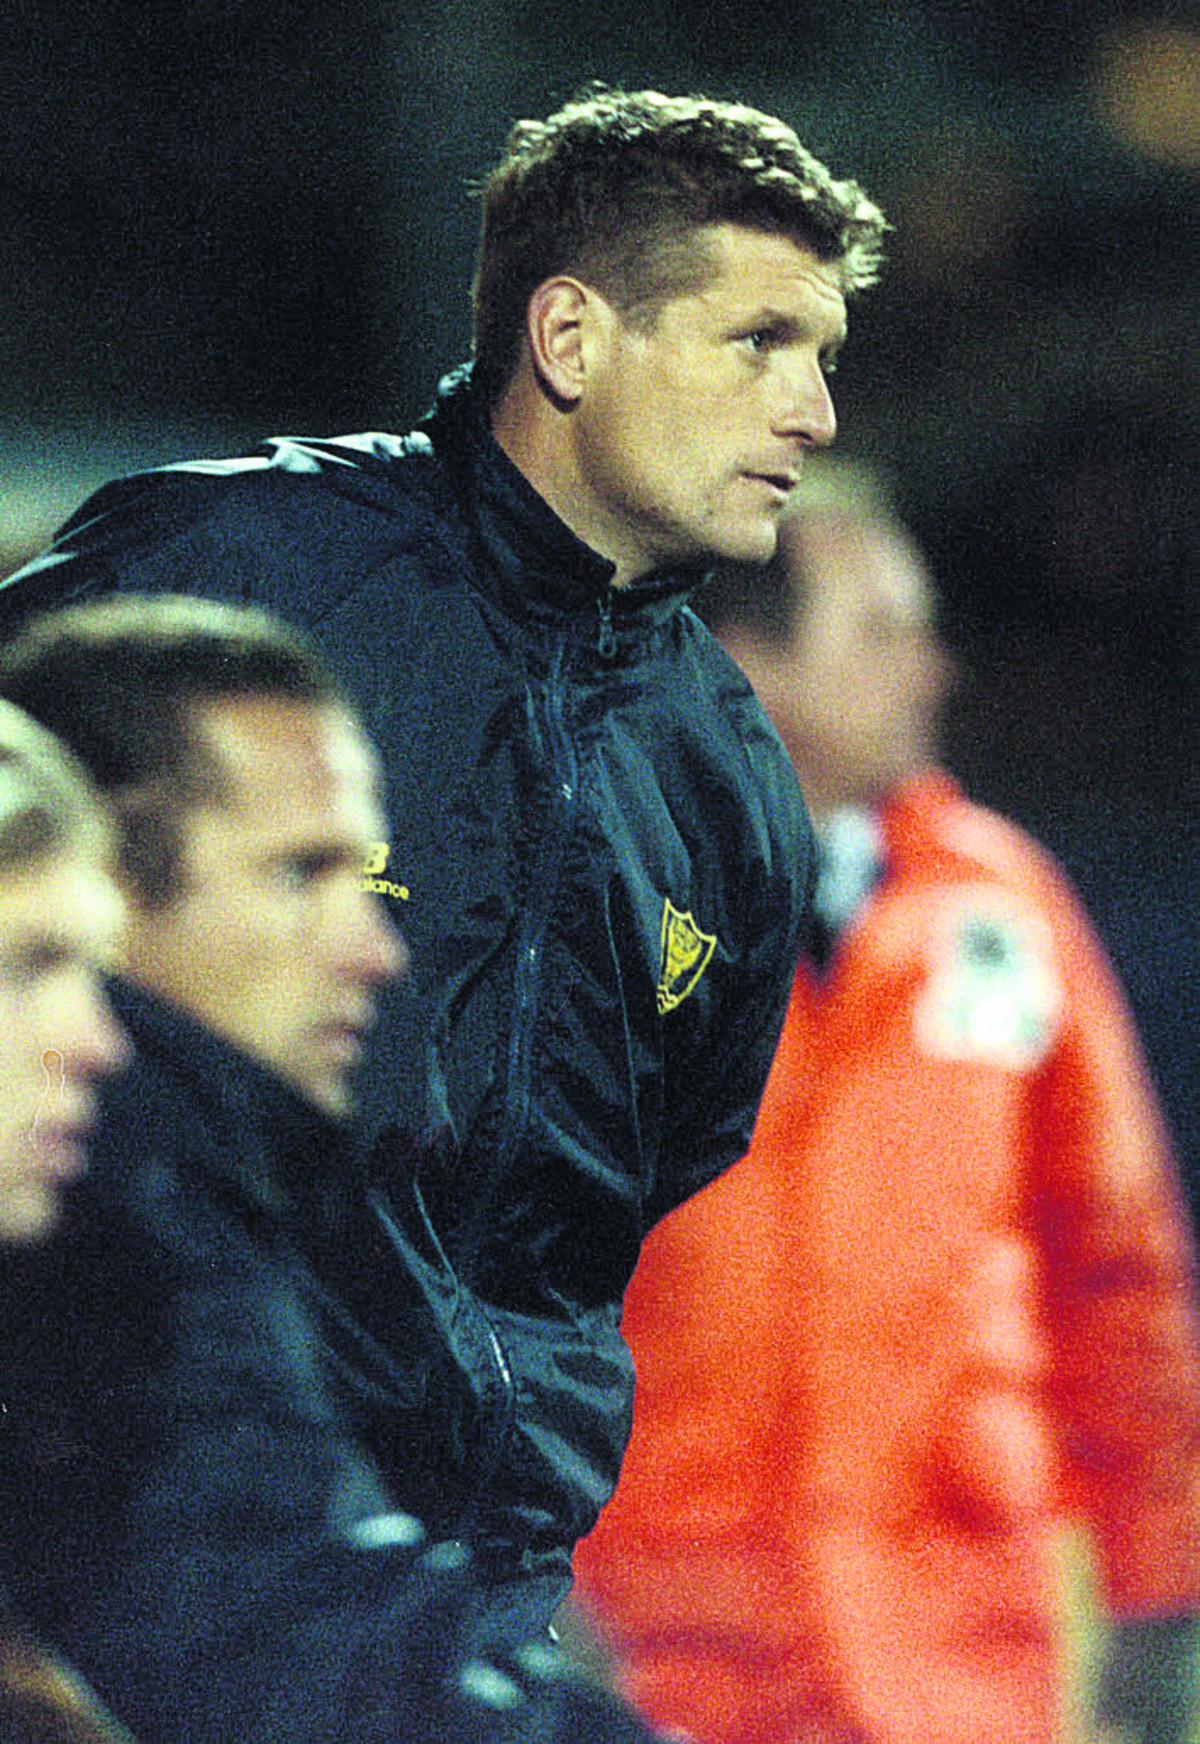 Mickey Lewis looks on as caretaker in 1999